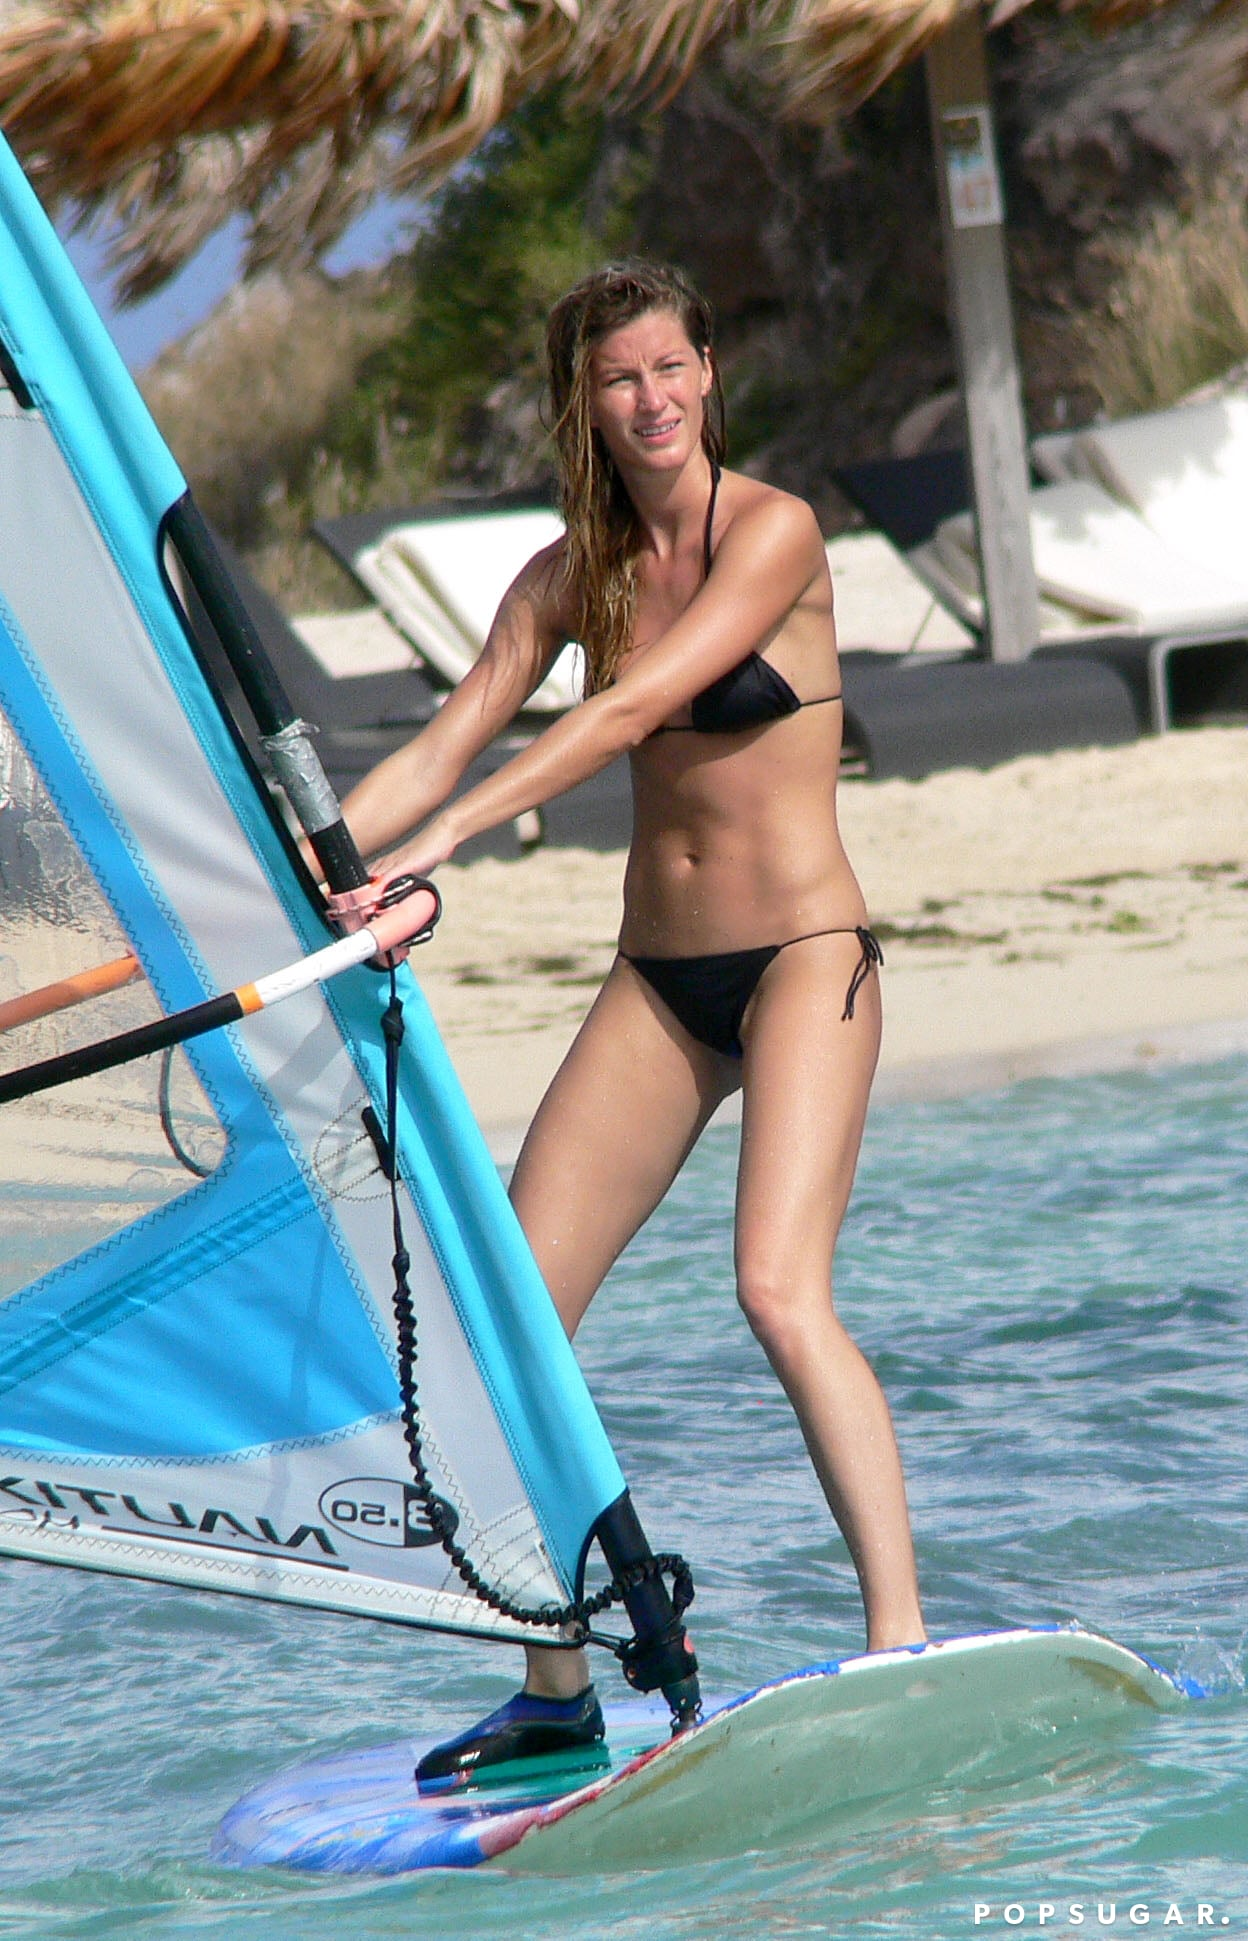 Gisele's Best Bikini Moments Through the Years